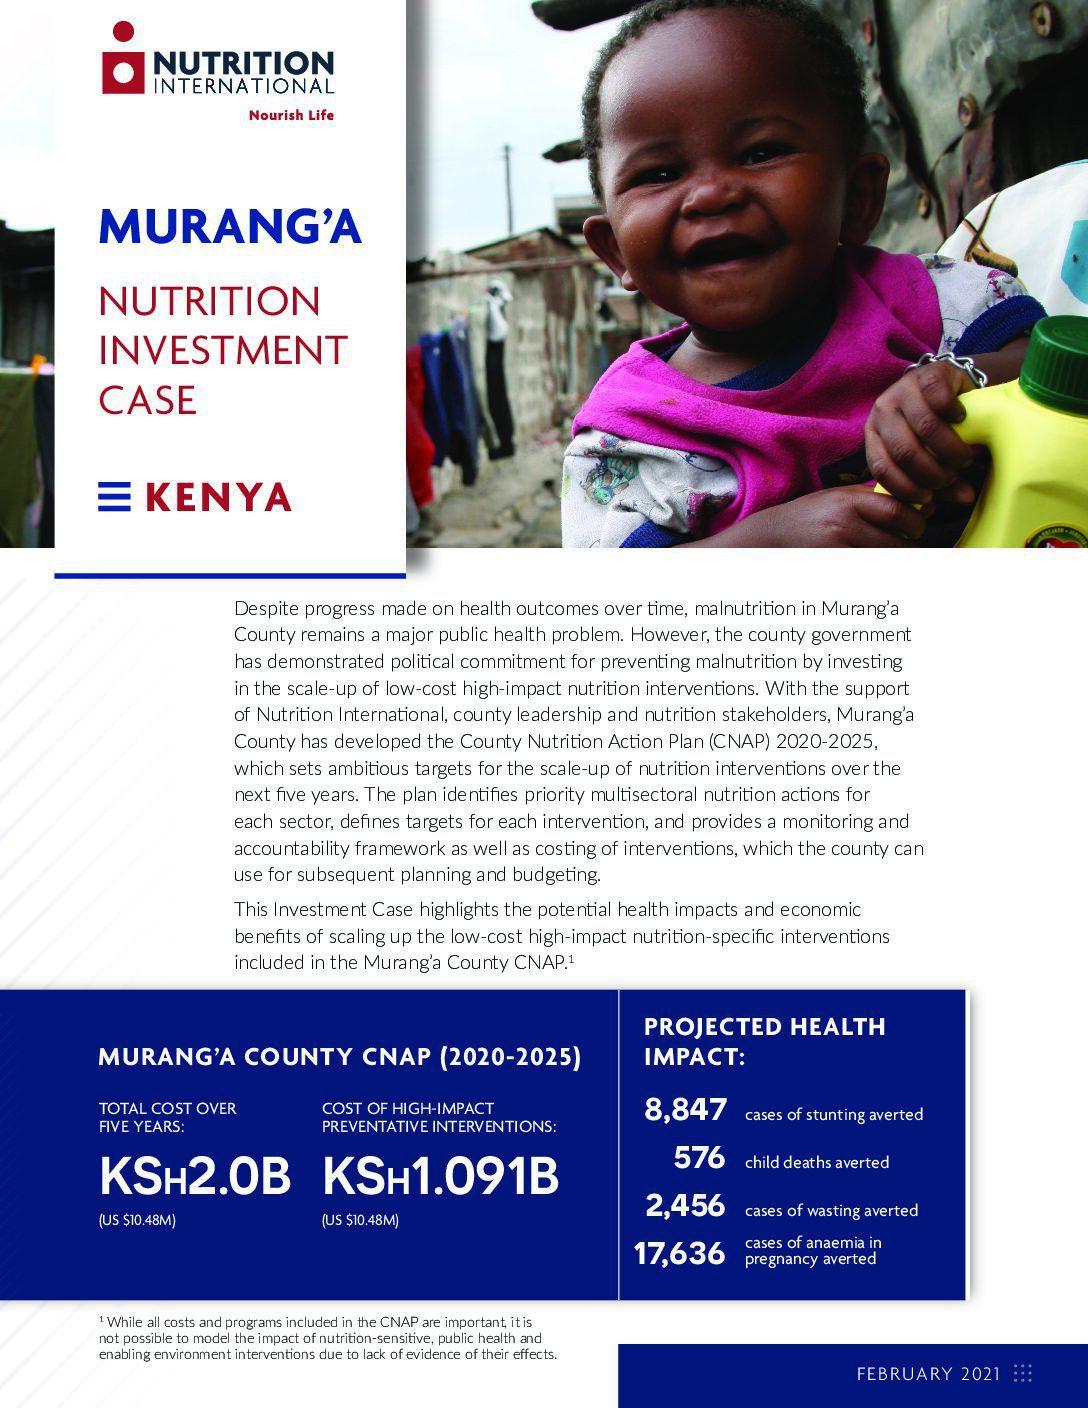 Murang'a County Nutrition Investment Case thumbnail